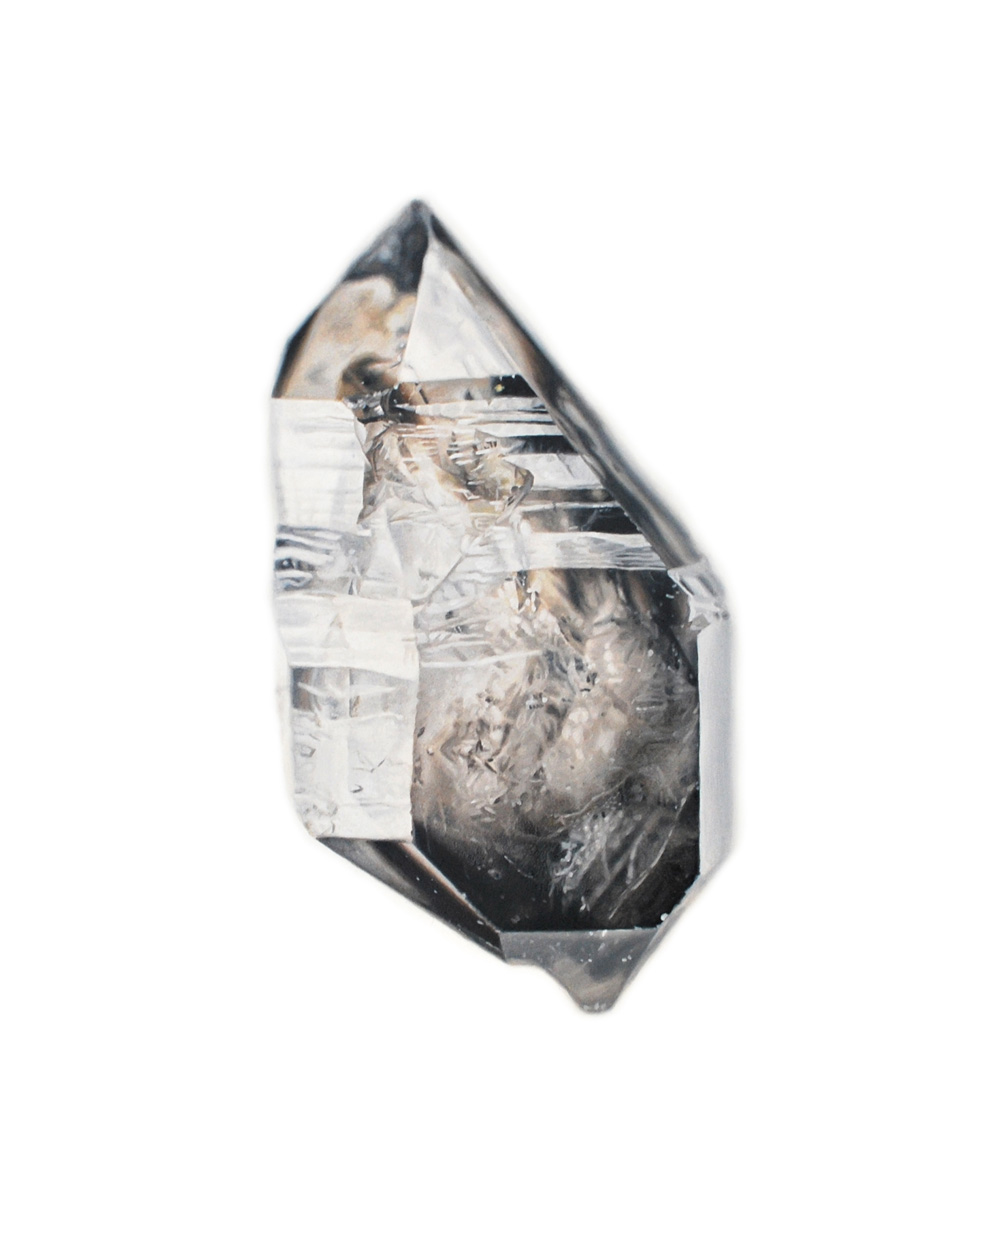 Carly Waito, Smoky Quartz X, 2014